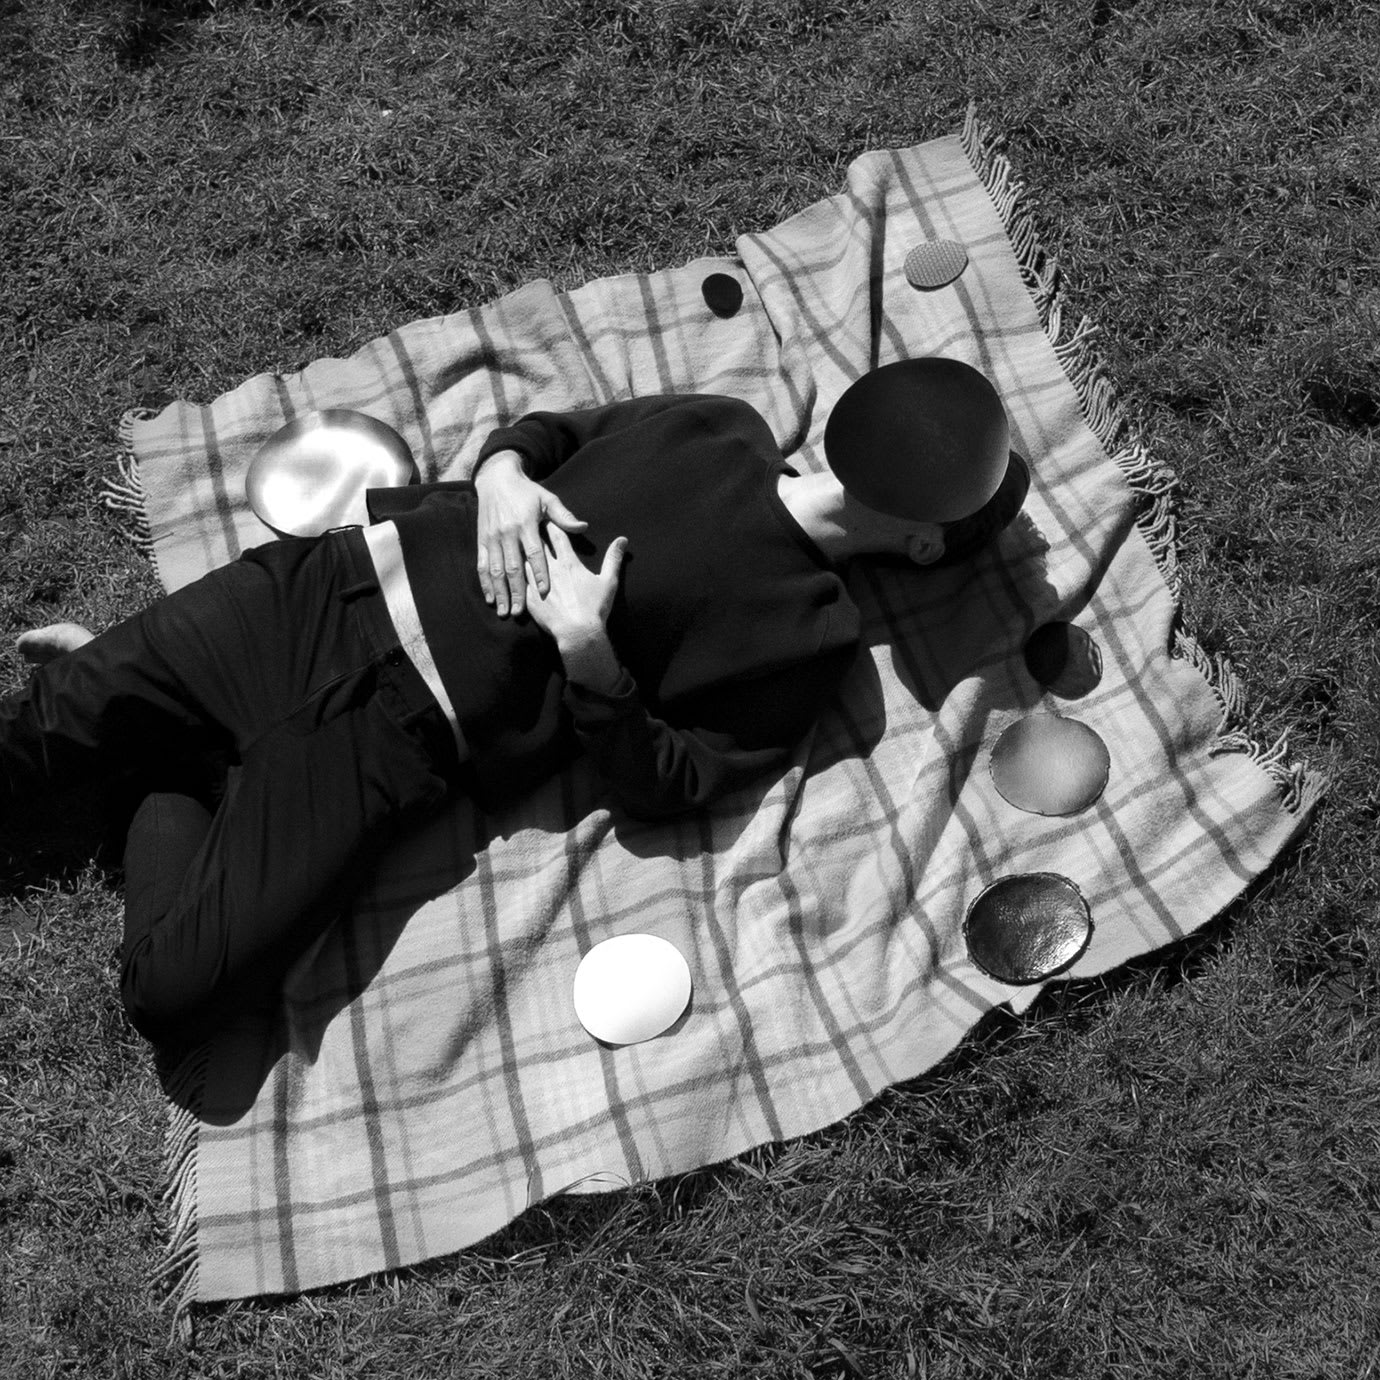 A person lying on a rug on the grass.